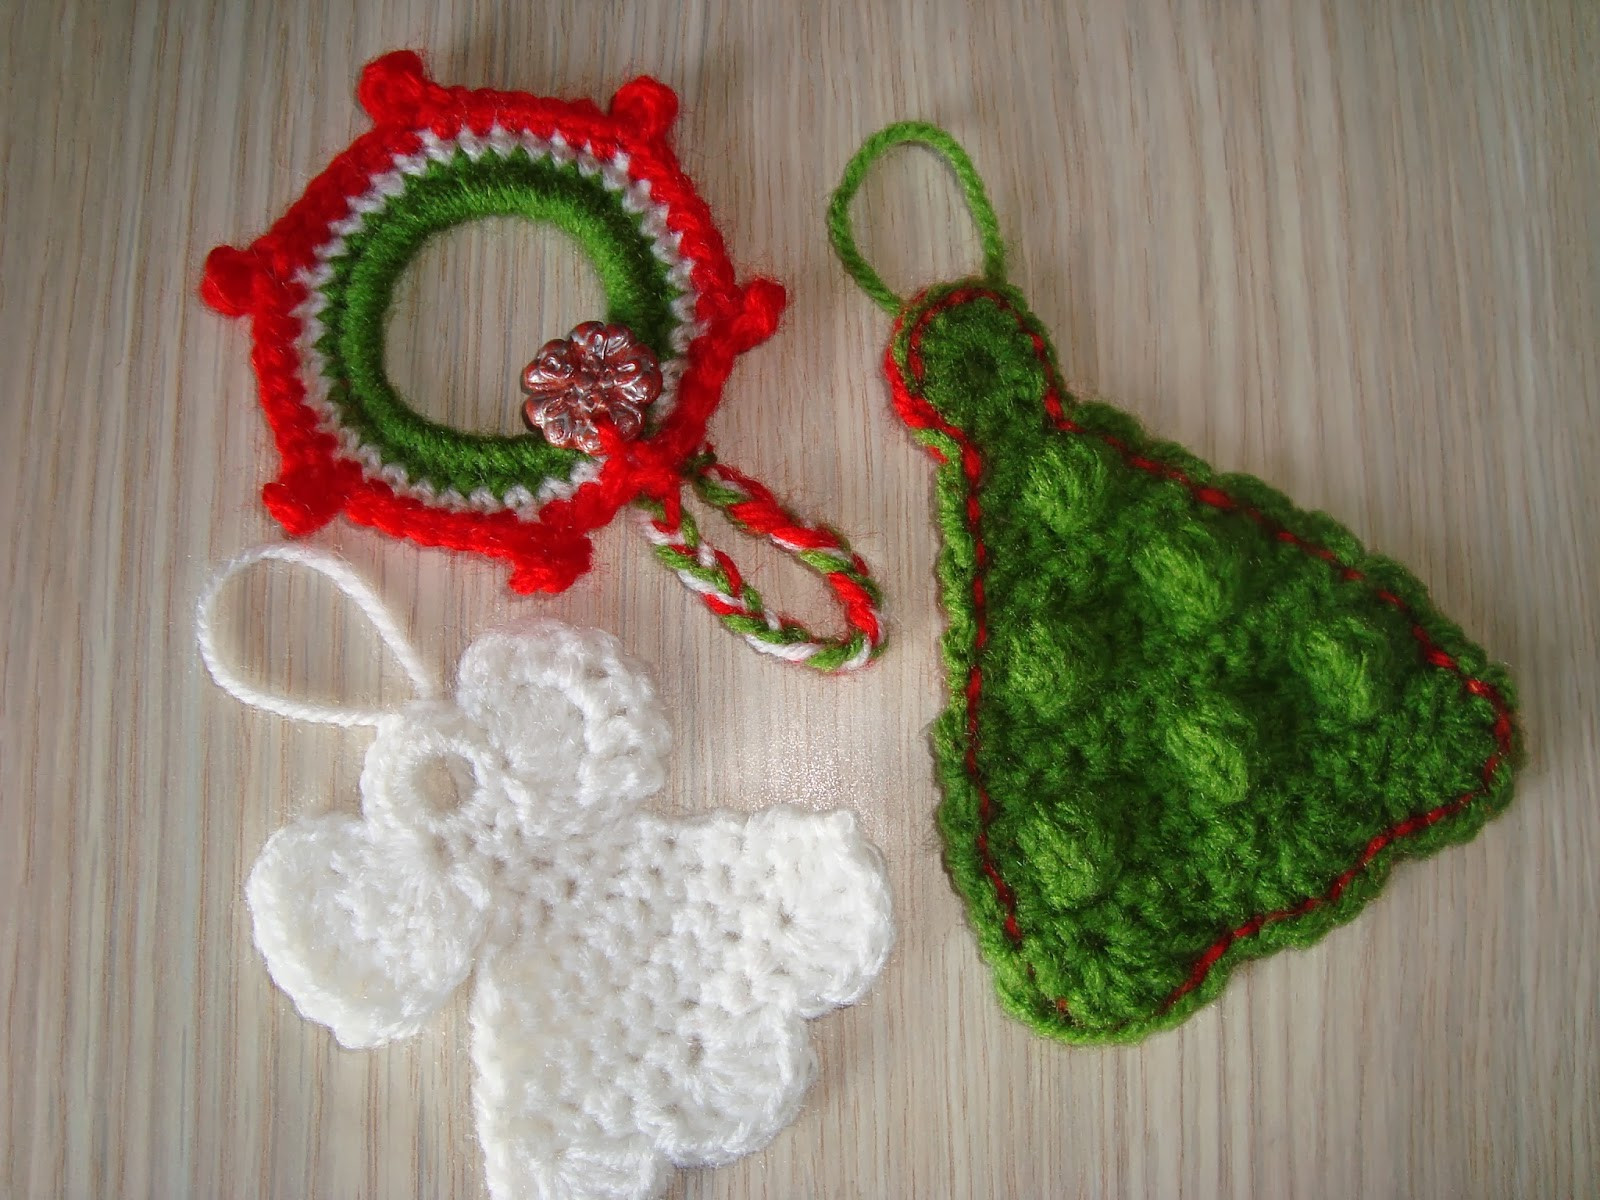 Crochet Christmas ornaments Awesome Handmade by Camelia Pattern Three ornaments Crocheted Of Fresh 50 Pictures Crochet Christmas ornaments